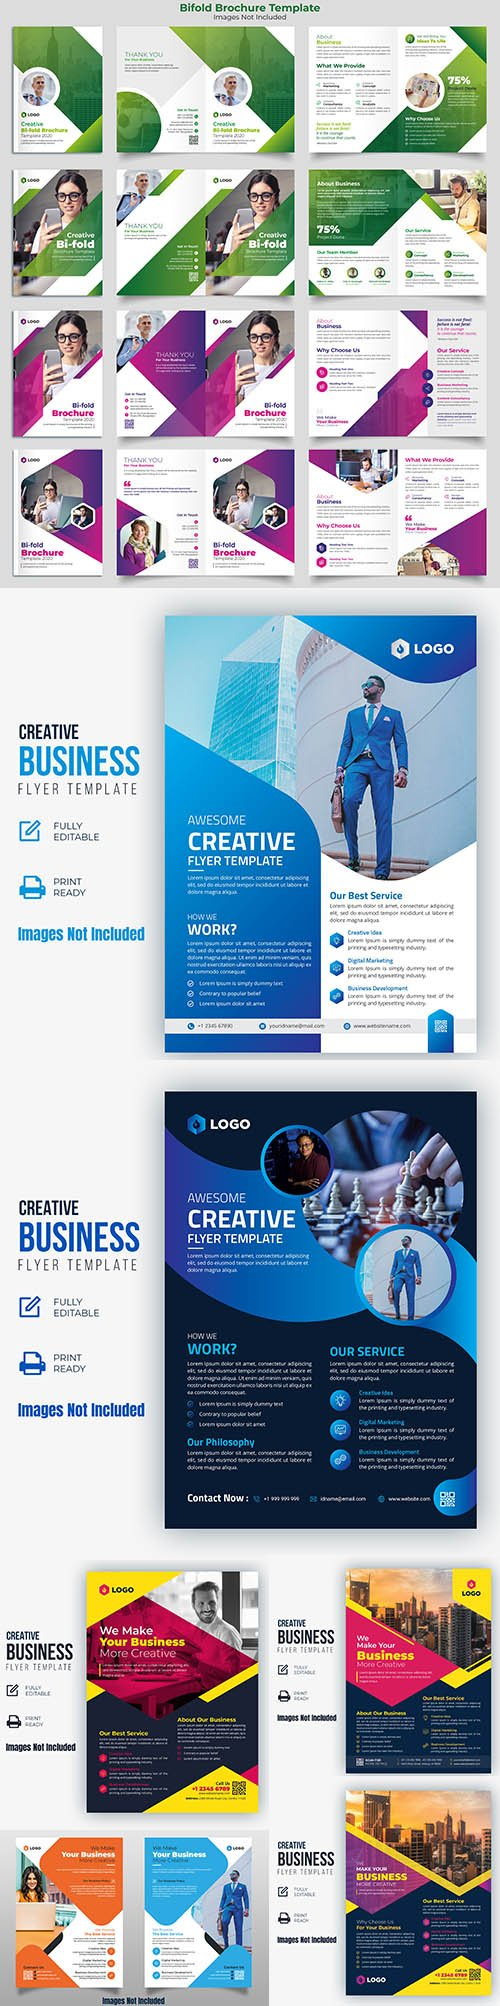 Bifold Brochure Template and Creative Business Flyer Pack